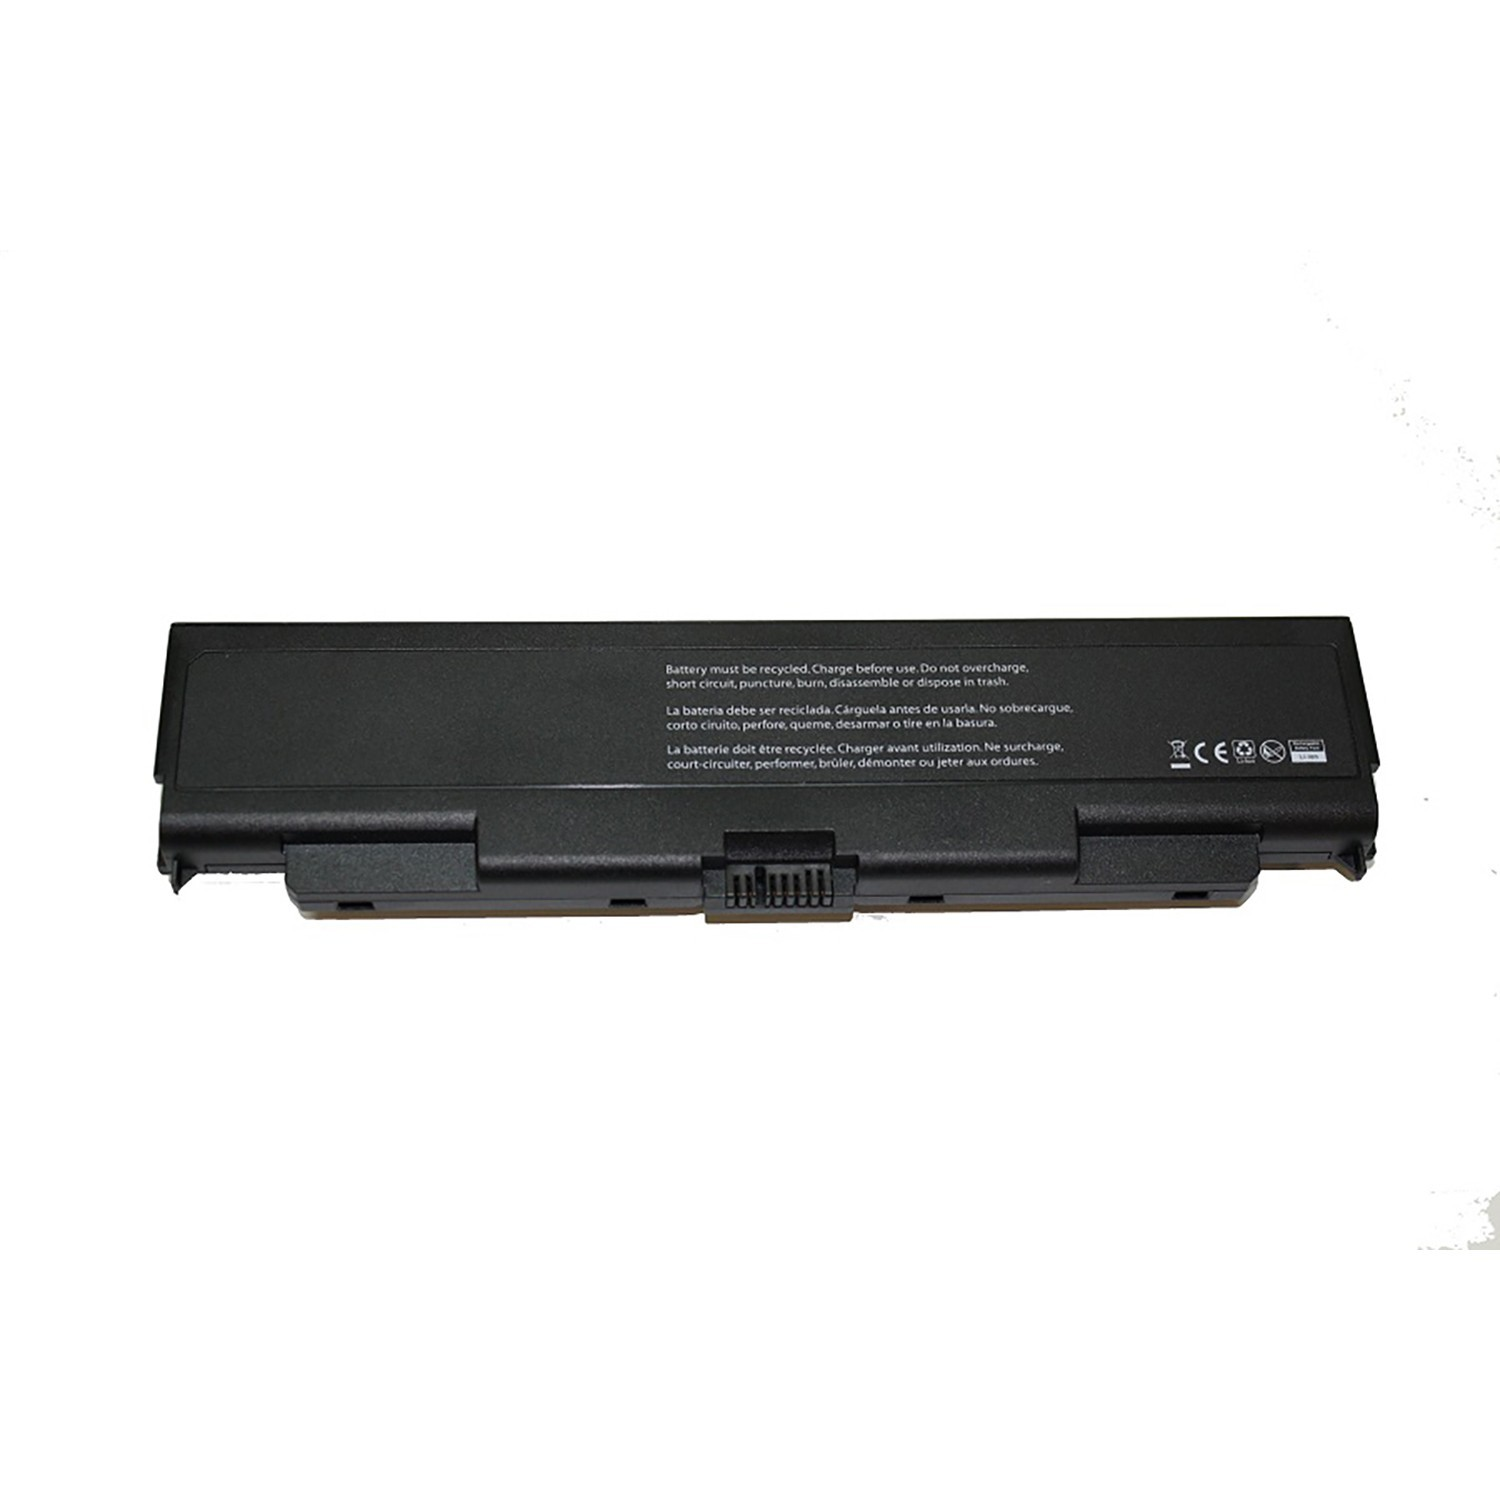 V7 0C52863-V7 5200mAh Replacement Notebook Battery For 45N1145 147 149